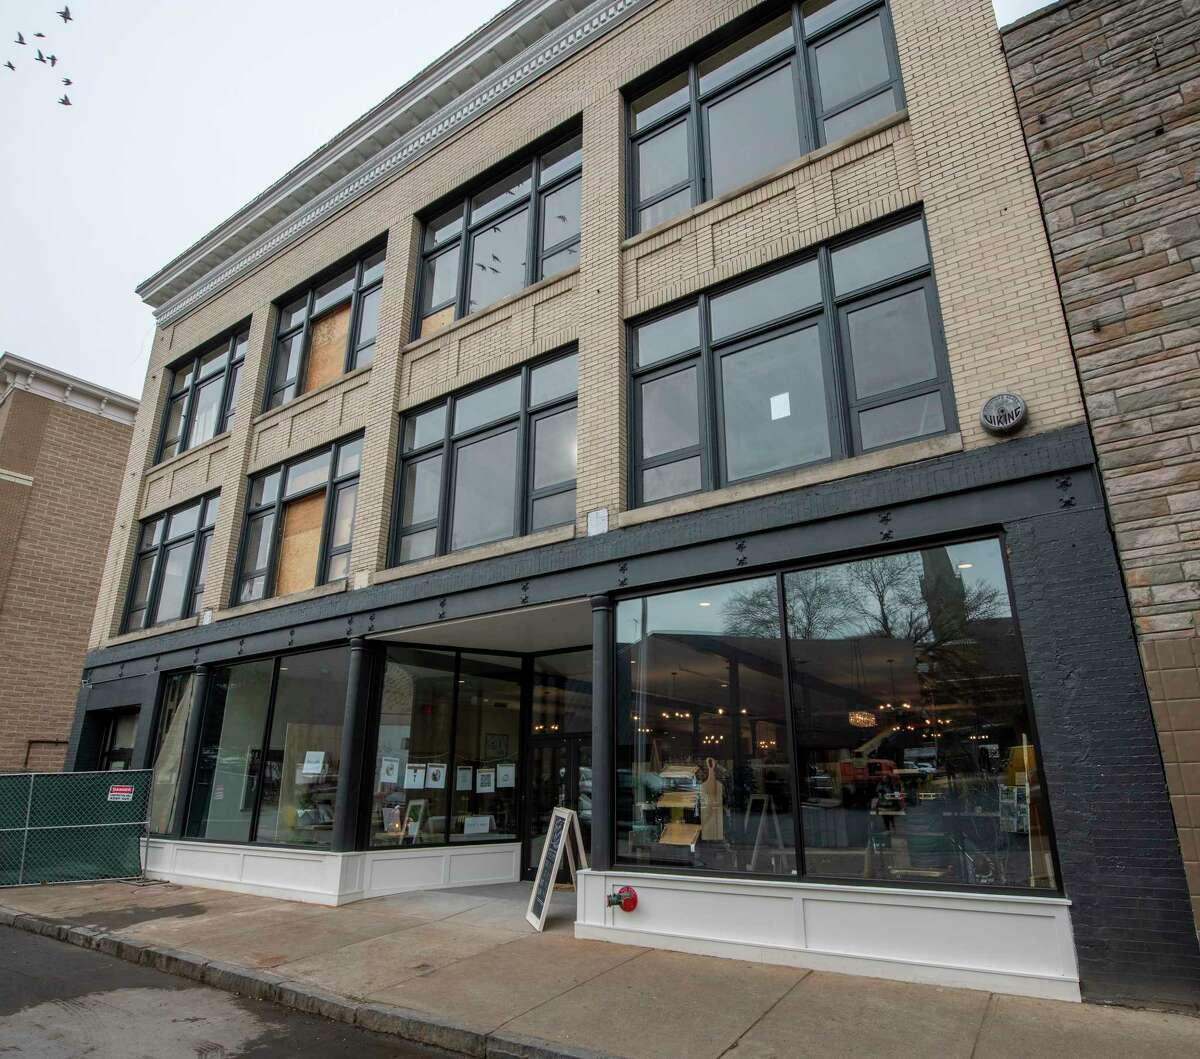 Exterior view of the Clinton Street Mercantile at 148 Clinton Street Thursday Nov. 15, 2018 in Schenectady, N.Y. (Skip Dickstein/Times Union)